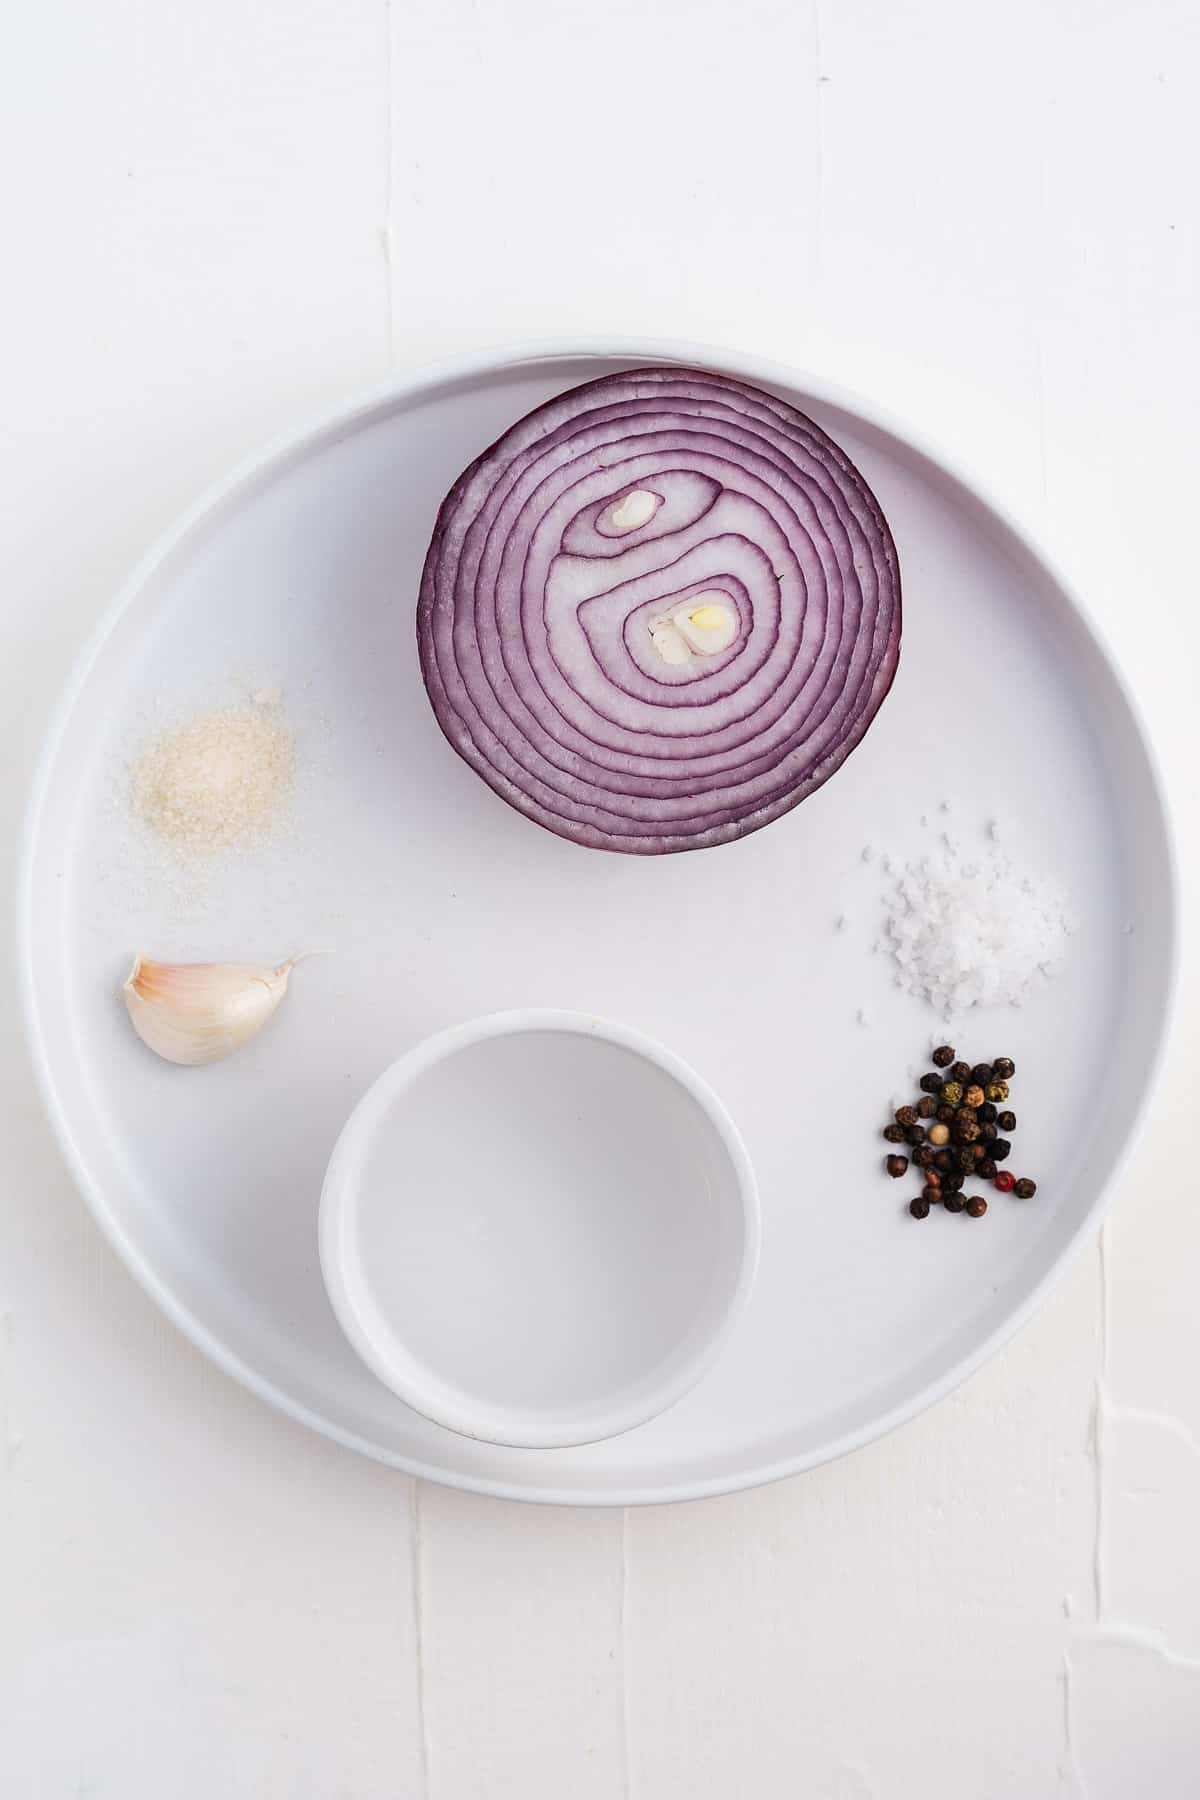 Red Onion, Garlic, Cane Sugar, Peppercorns, Salt, and Vinegar